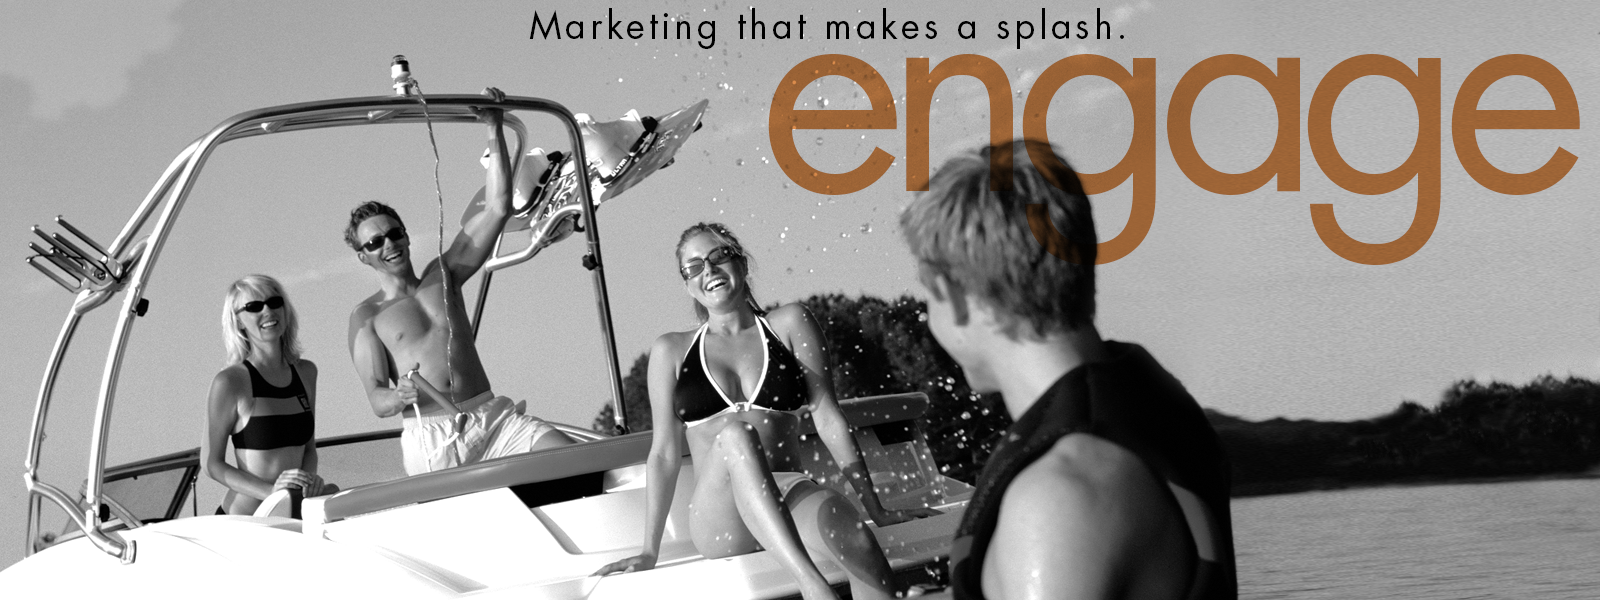 Marketing that makes a splash. engage